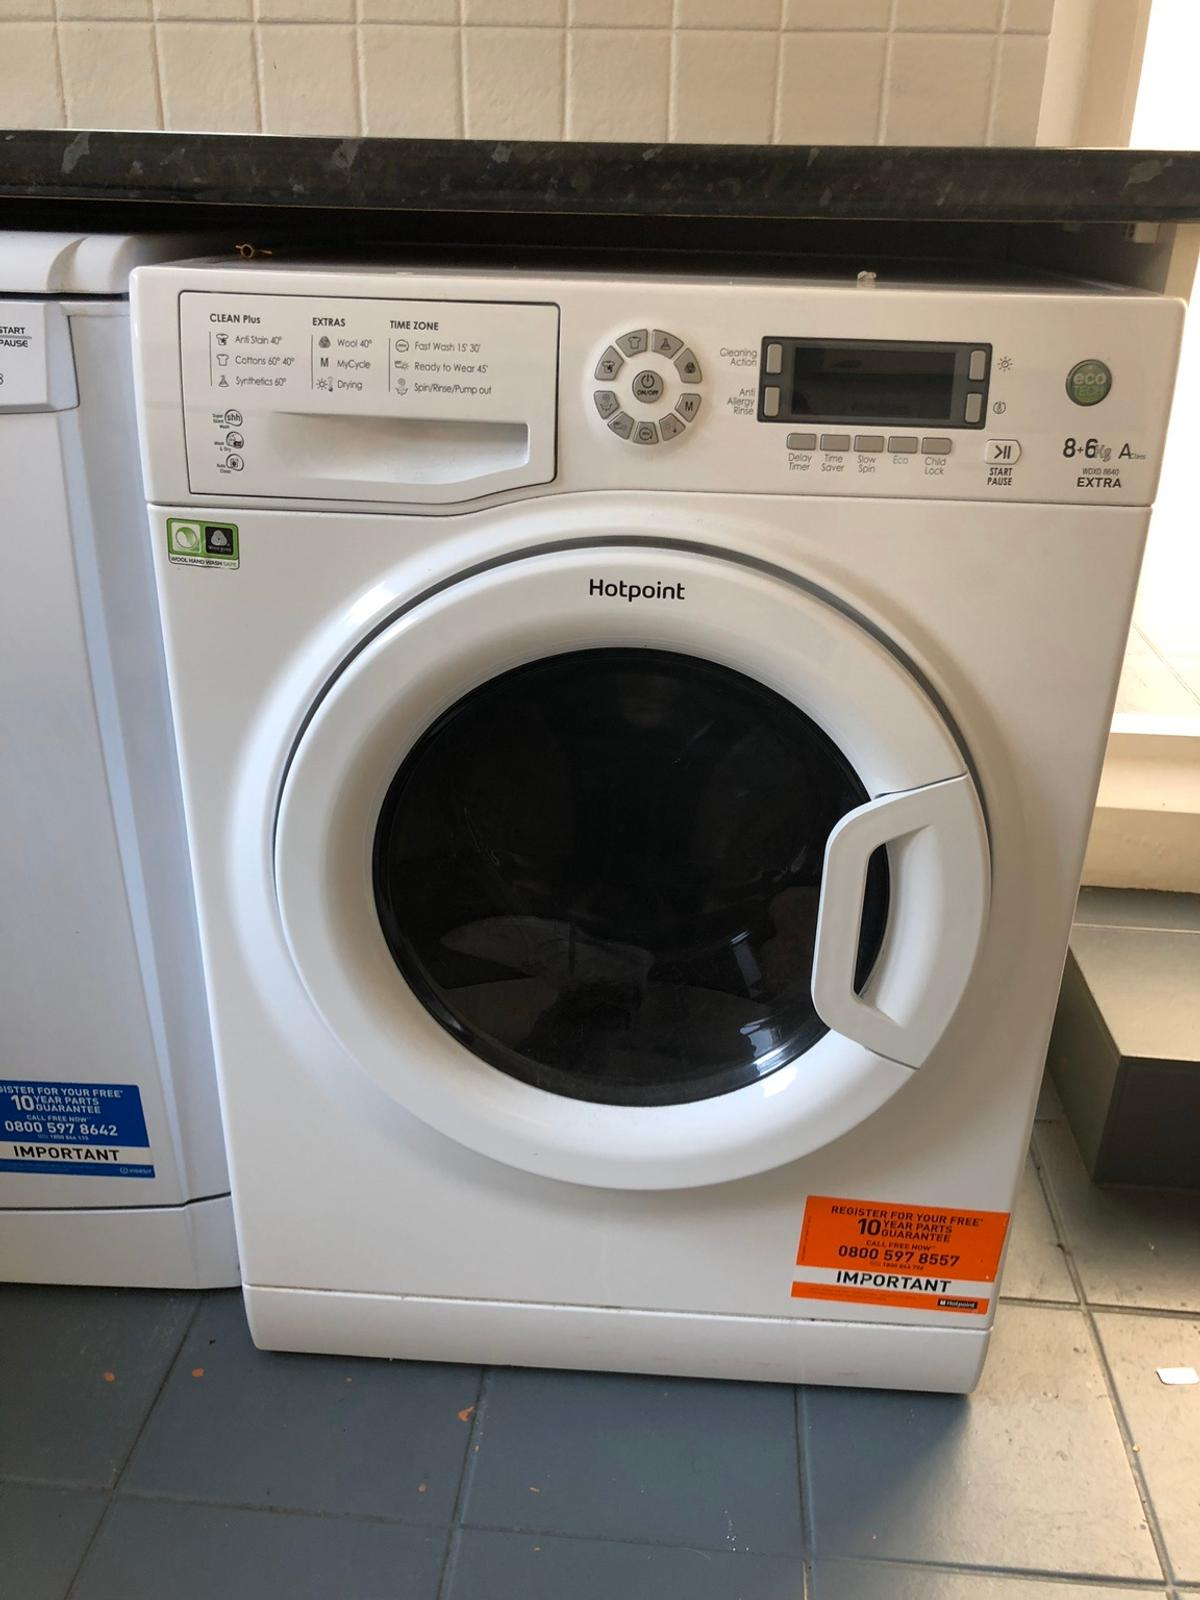 Hotpoint Washer Dryer In White Wdxd8640p In En2 London For 75 00 For Sale Shpock